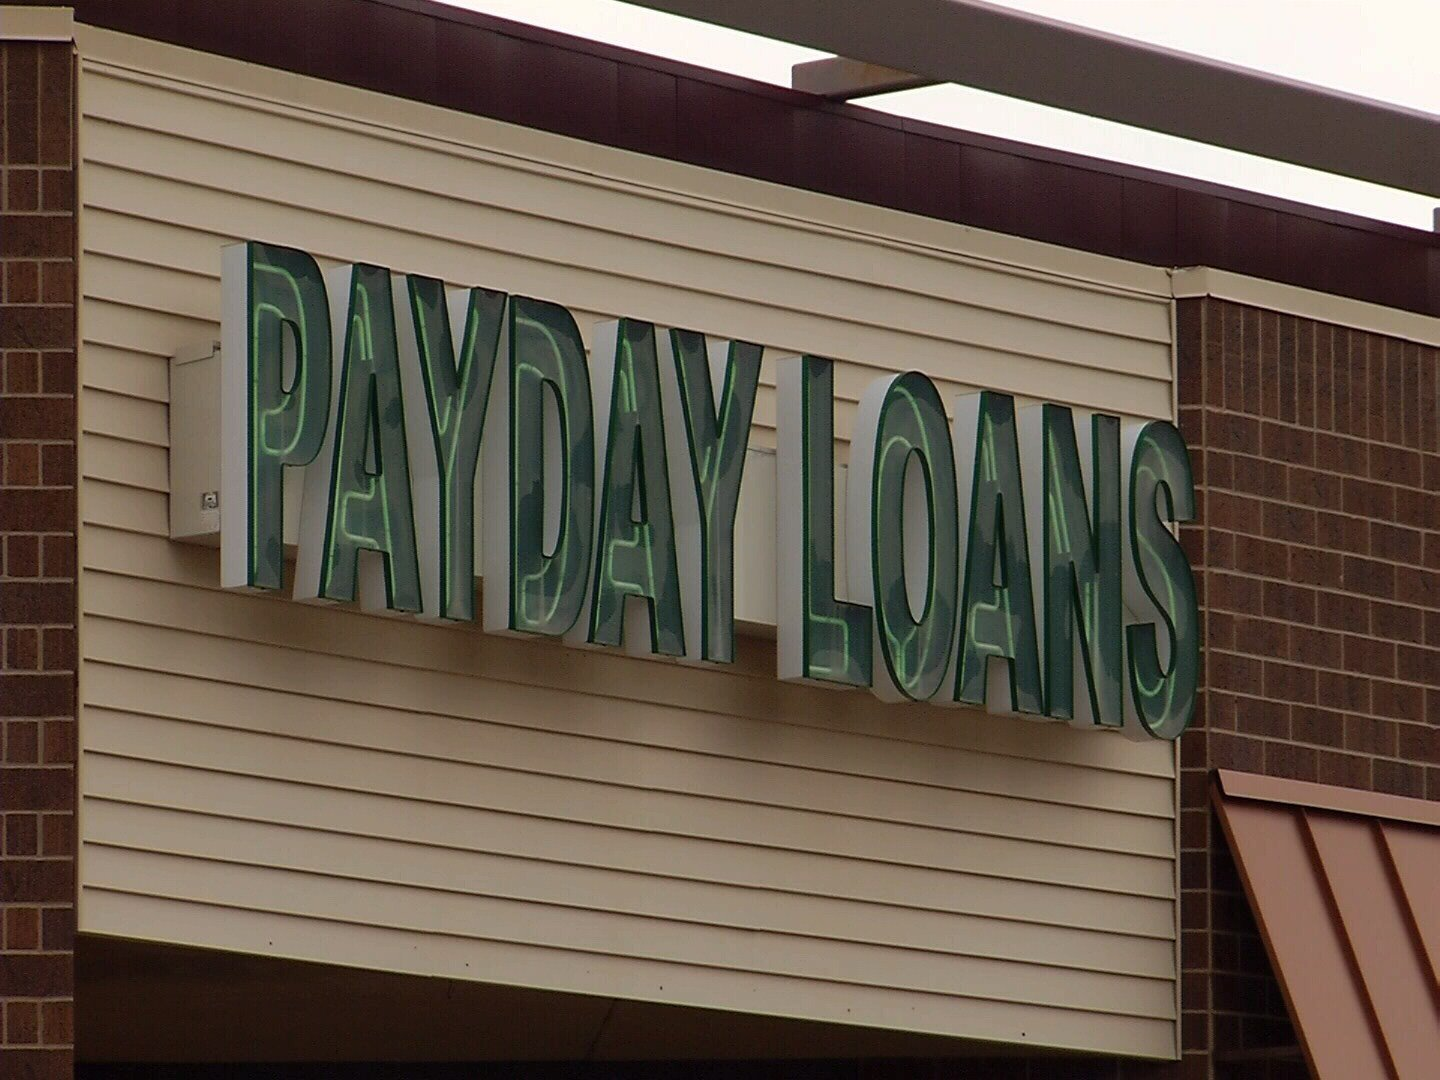 Cash king payday loan picture 6